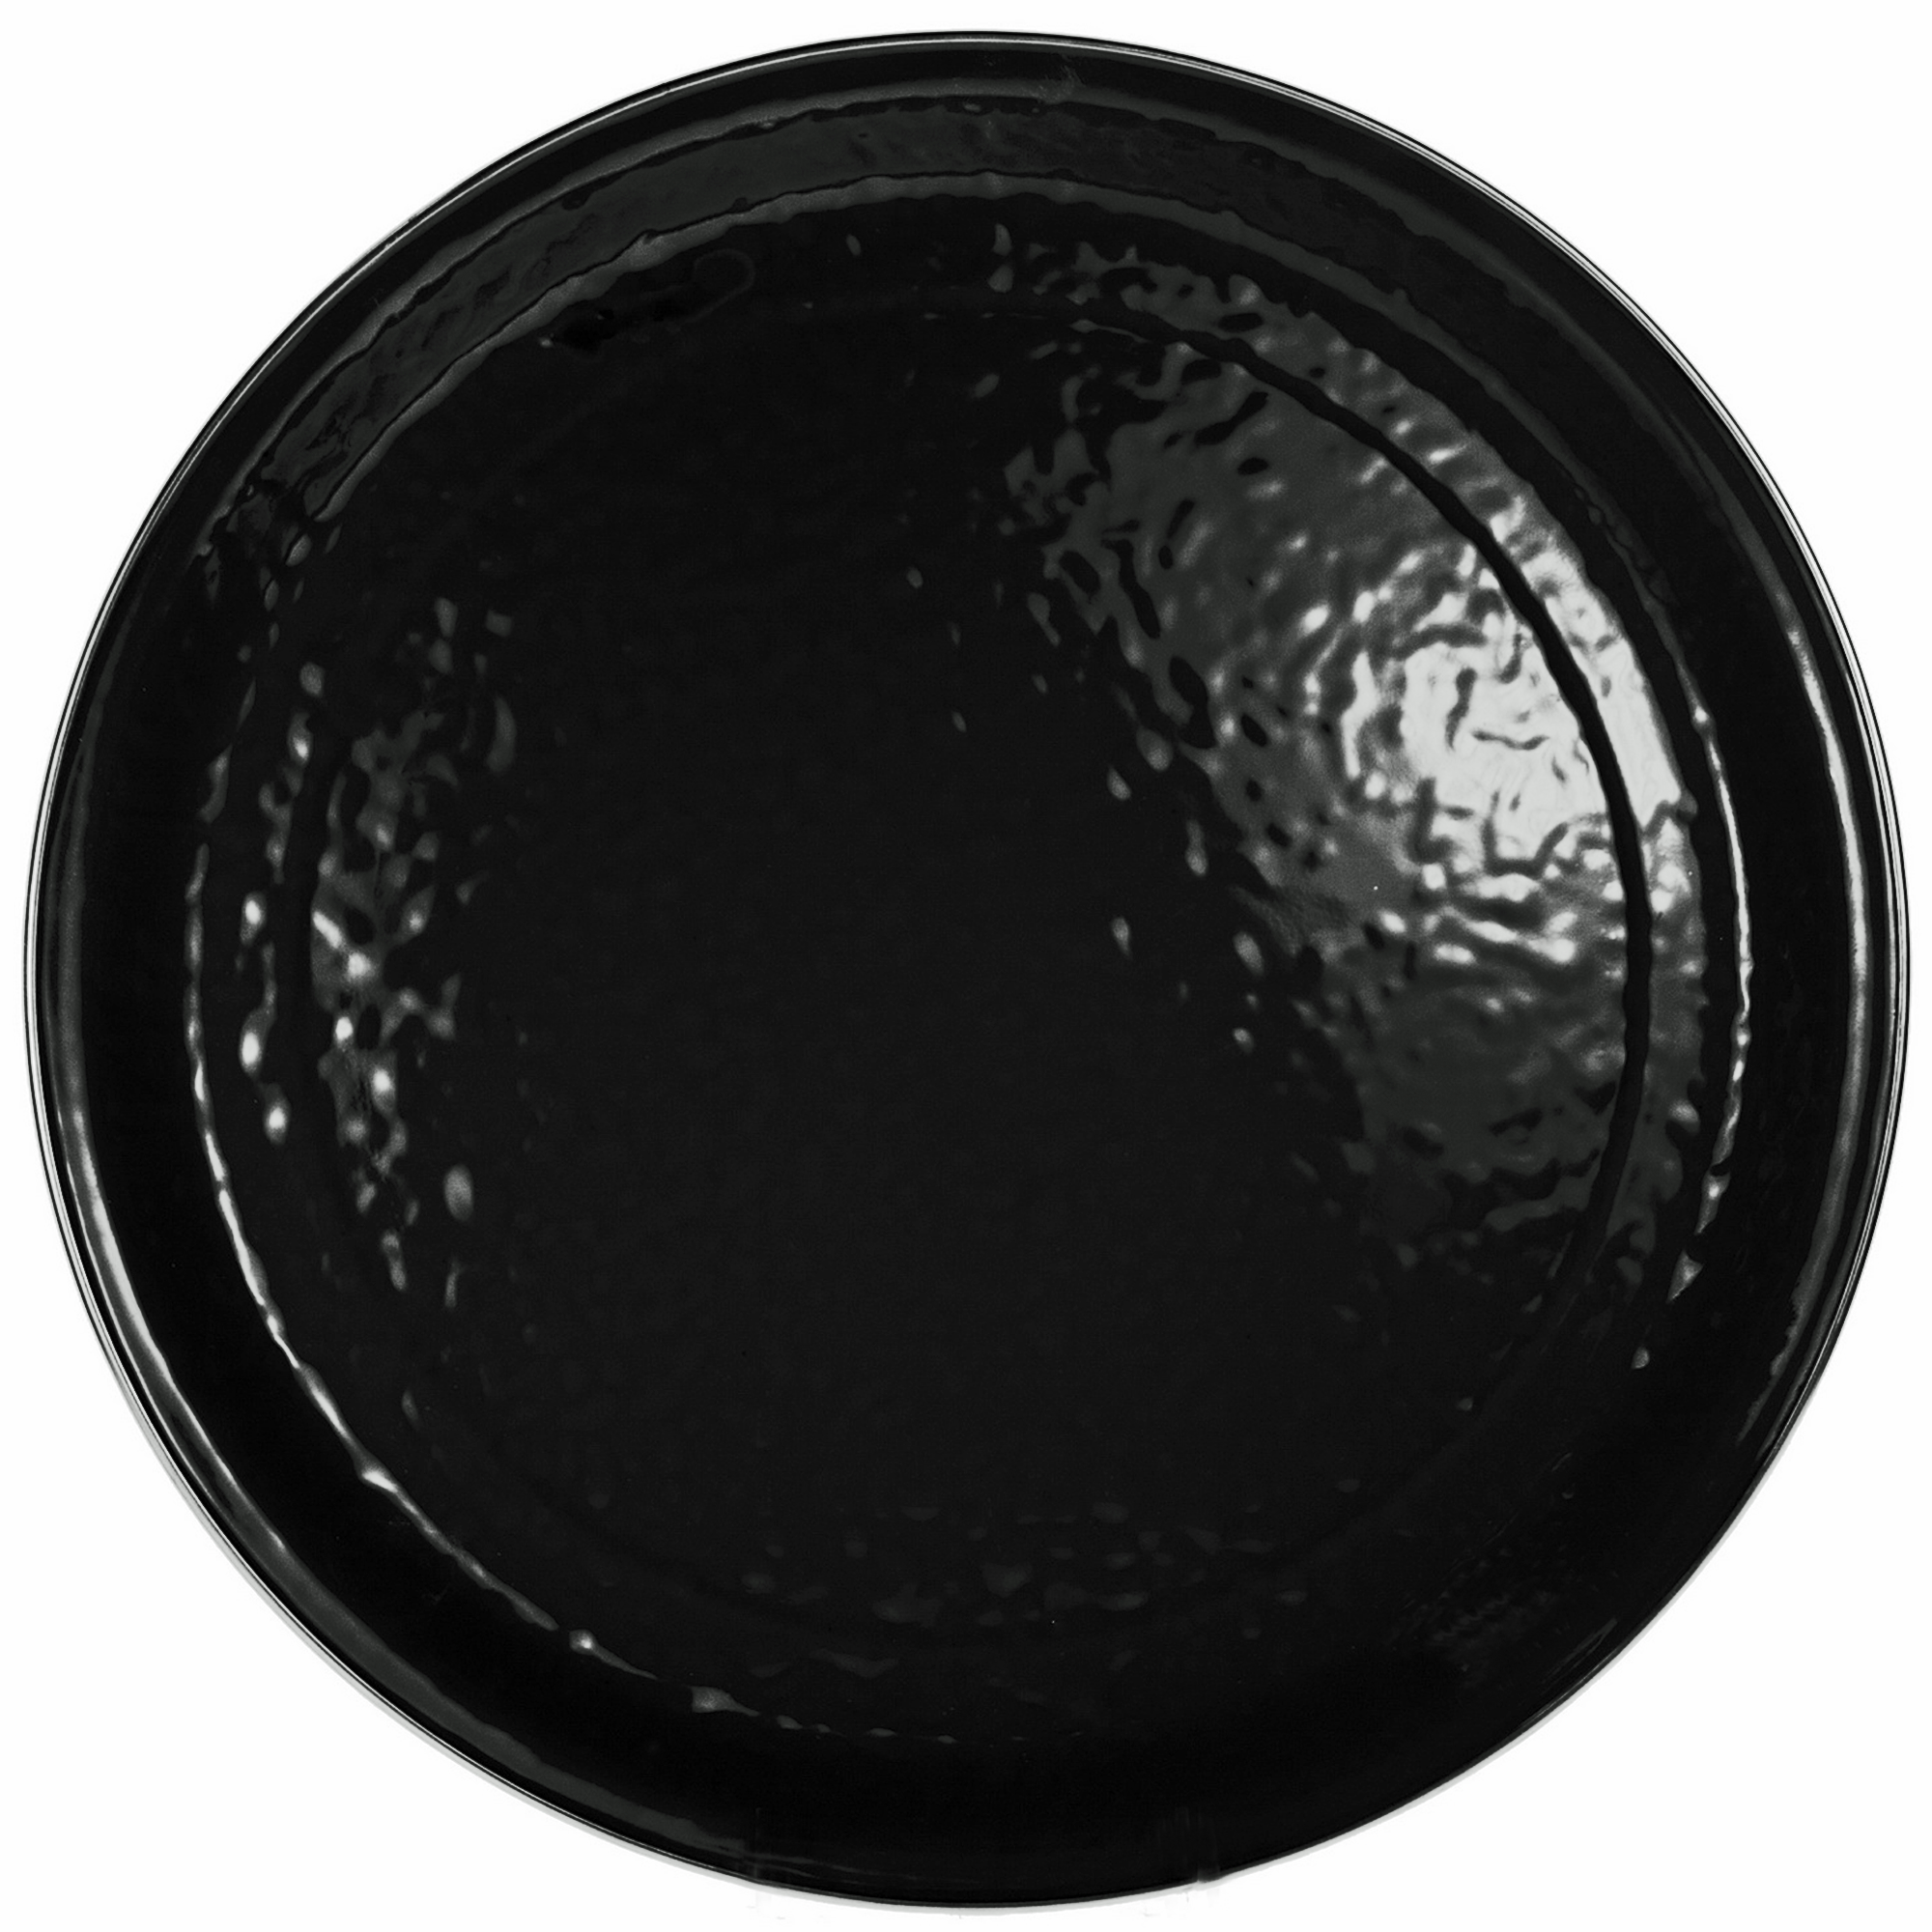 BK01 - Black on Black - Large 20 Inch Serving Tray